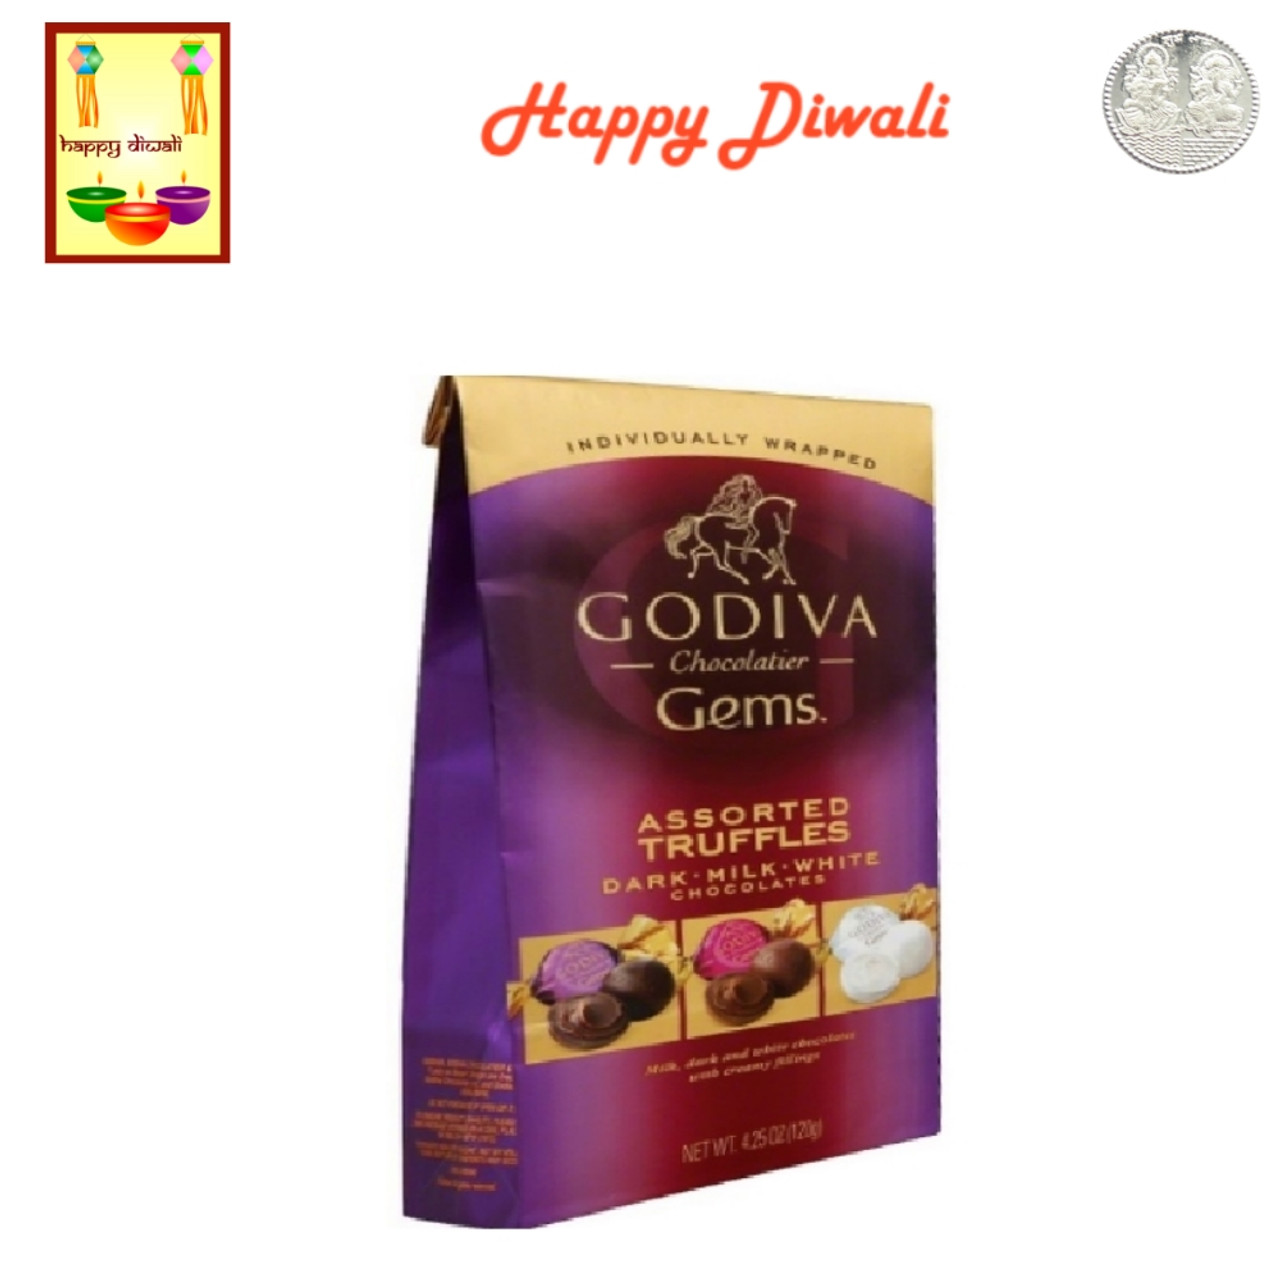 Chocolates- Godiva Assorted Classic Truffles with Diwali Greeting Card